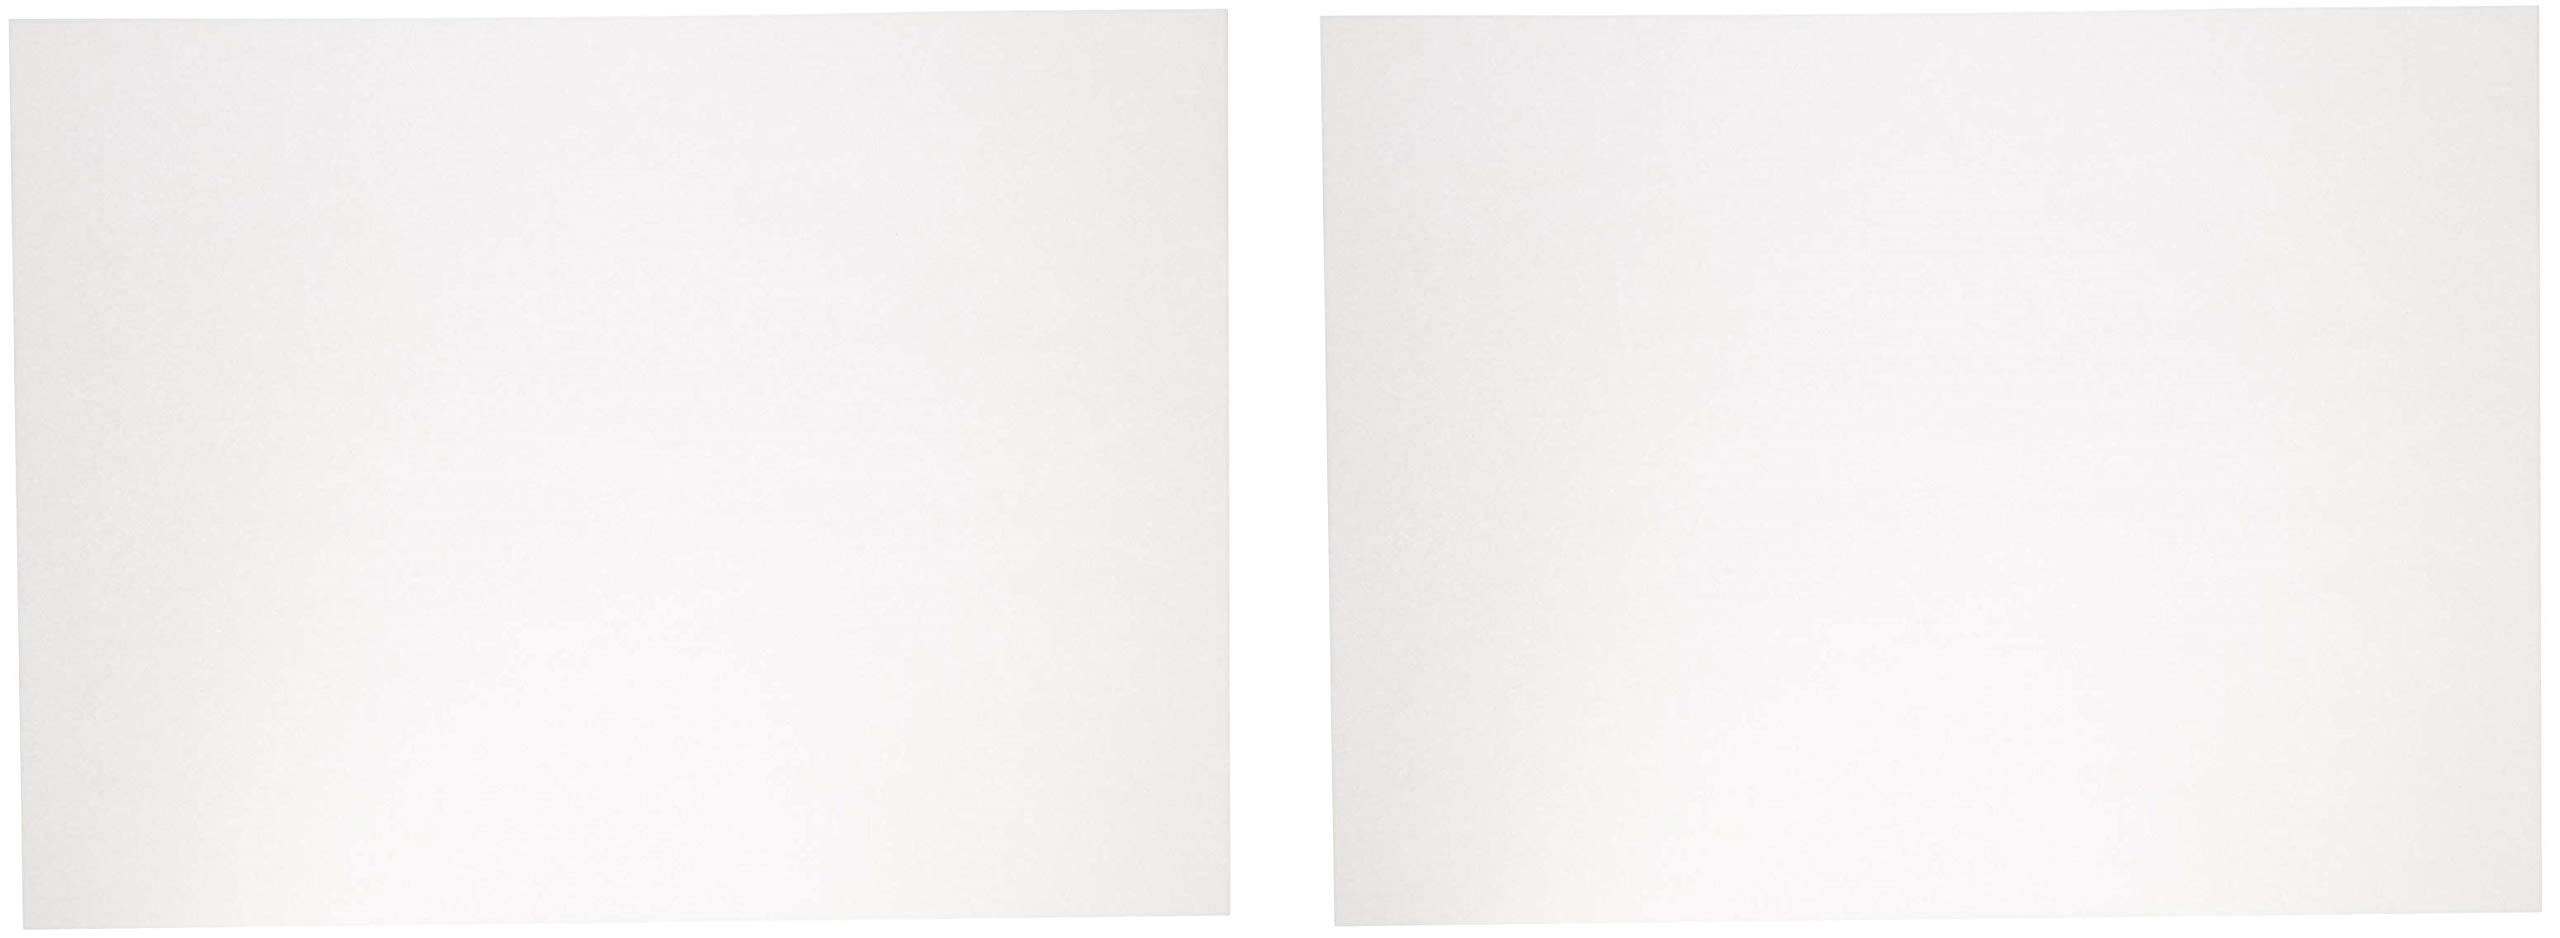 Sax Sulphite Drawing Paper, 60 lb, 18 x 24 Inches, Extra-White, Pack of 500 (2 X Pack of 500) by Sax